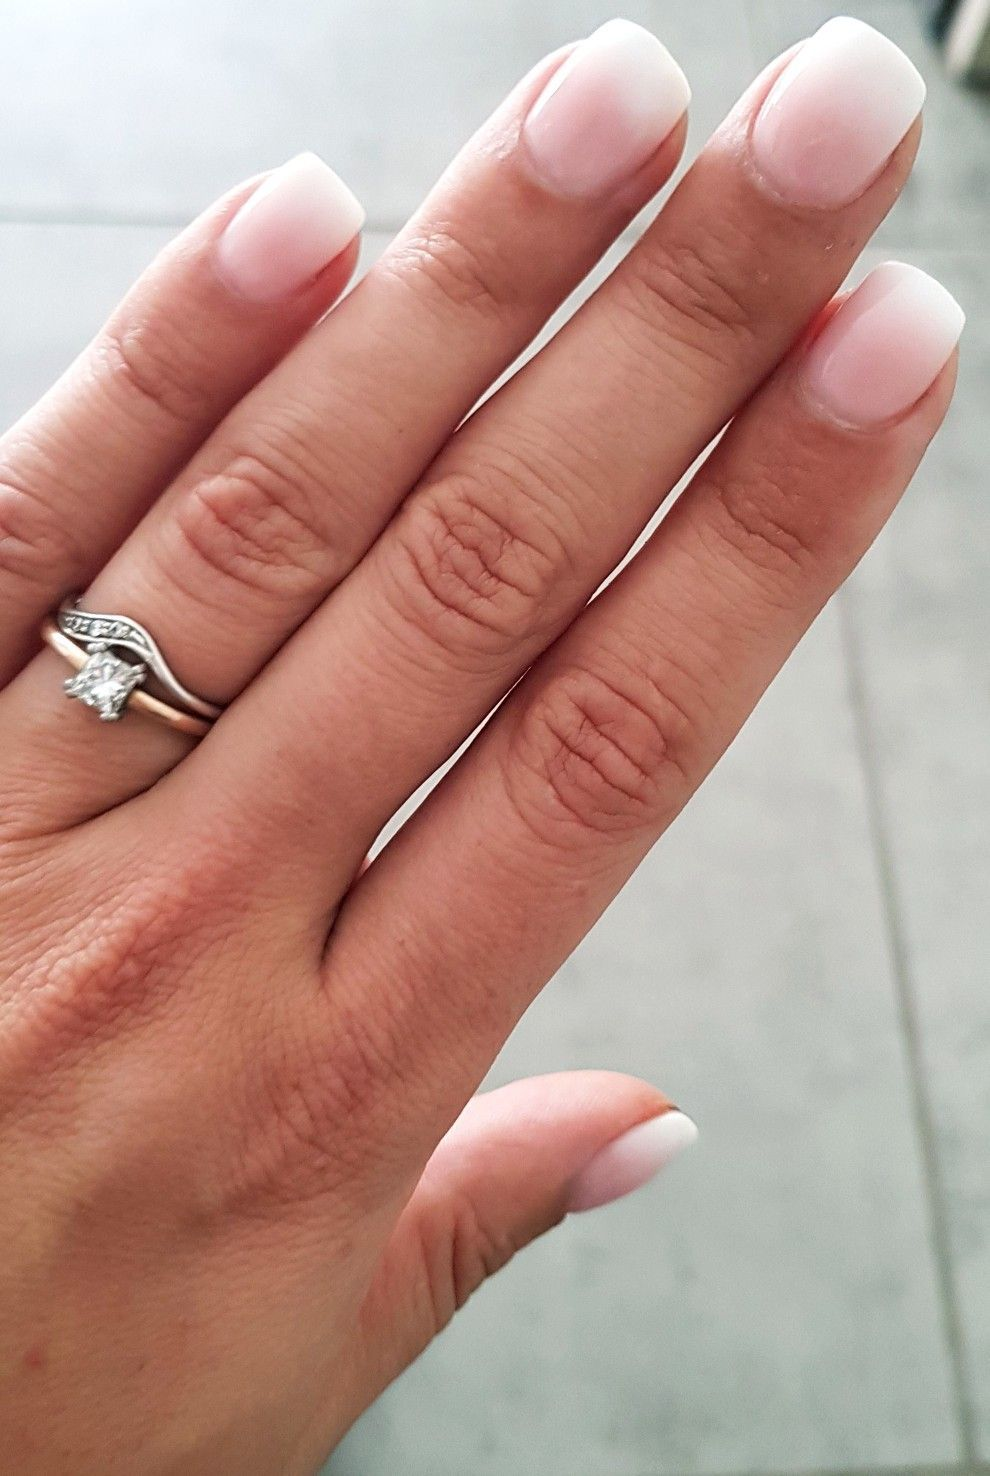 Loving These Ombre Gel Nails Wedding Vibes Pink White Ombre Gel Nails White Gel Nails Pink Ombre Nails